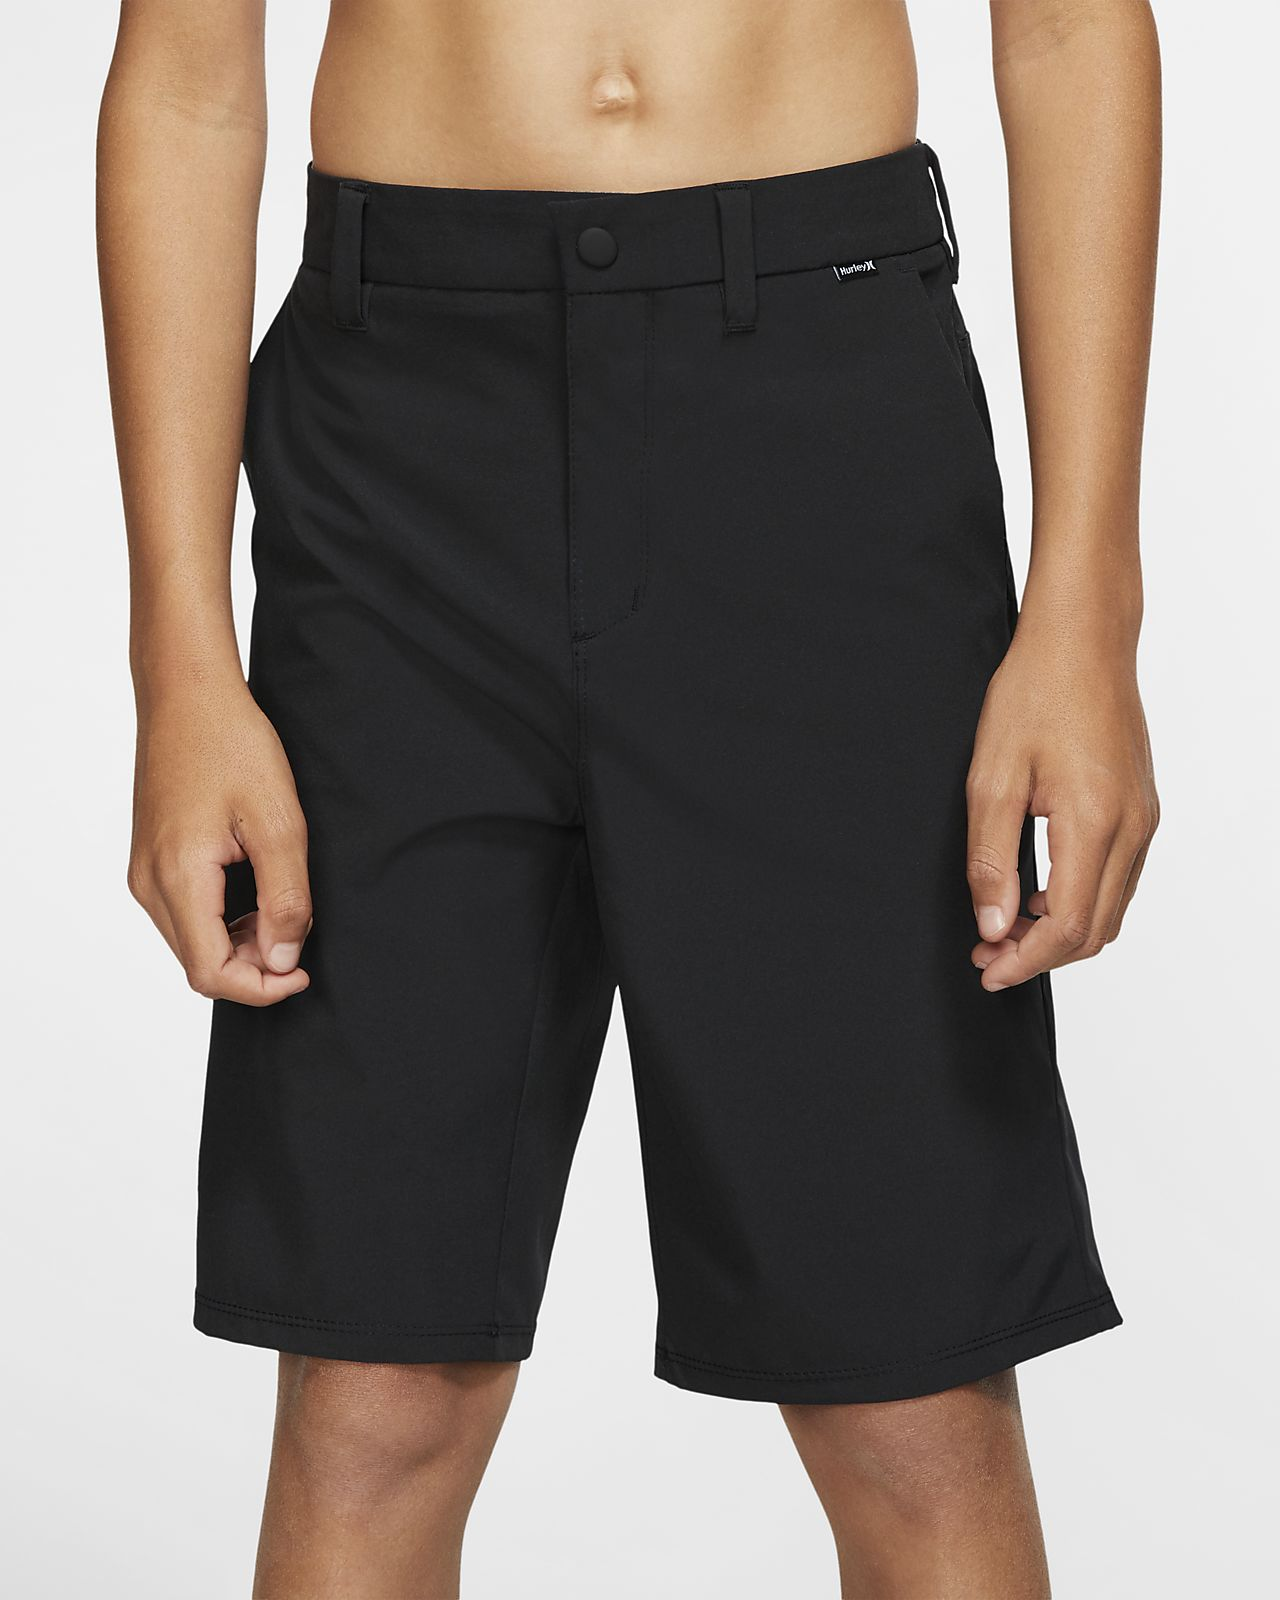 Hurley Phantom Boys' Walkshorts